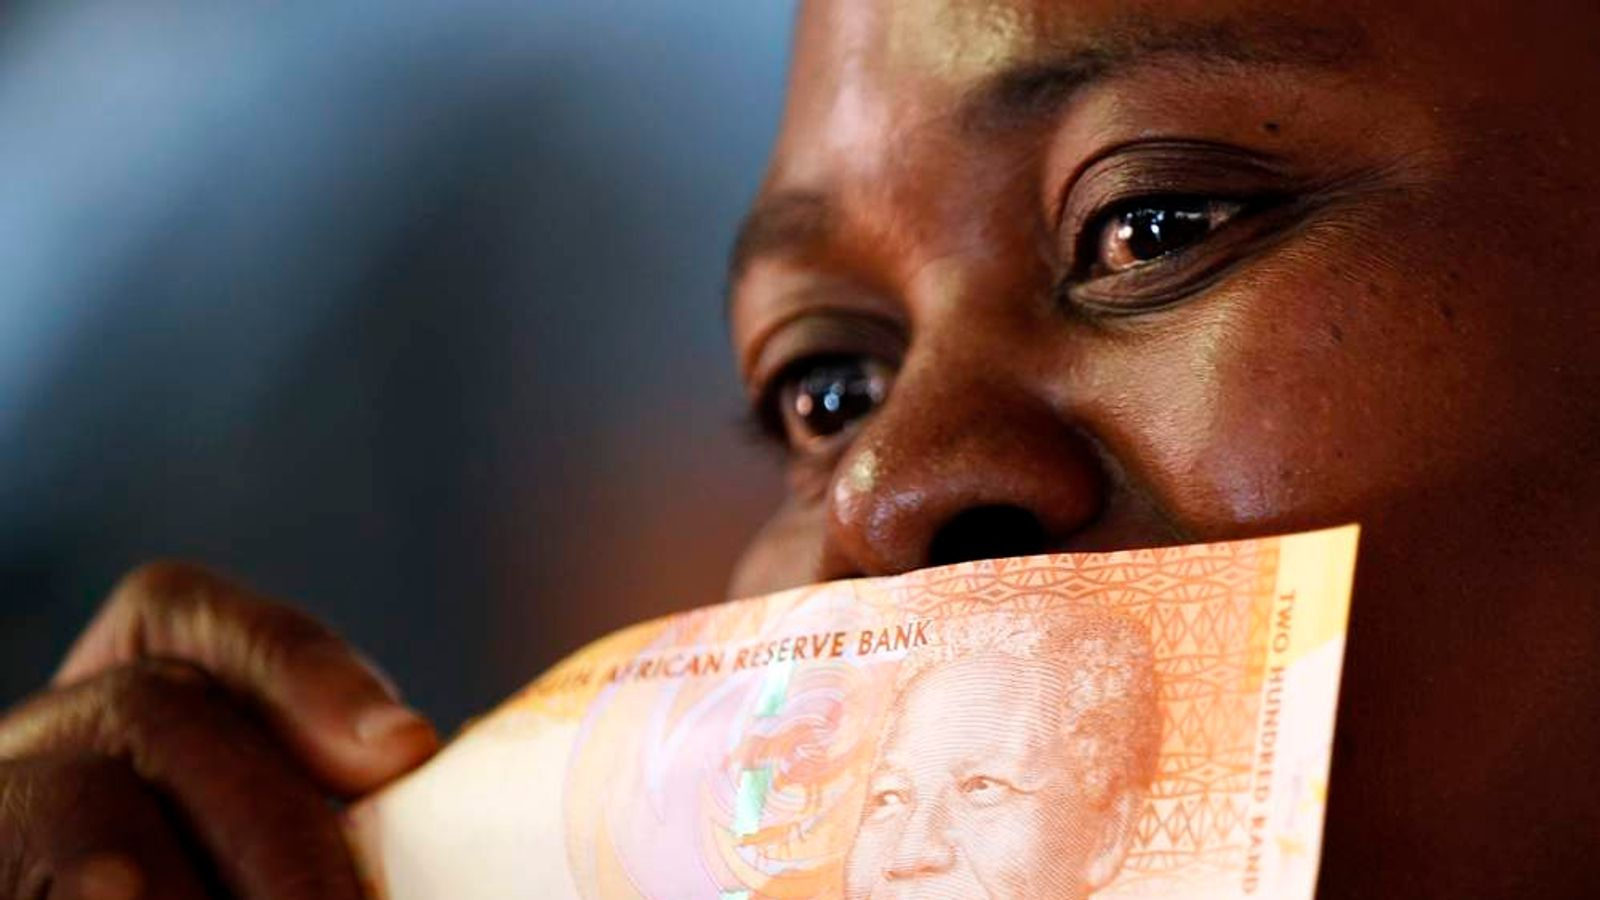 South Africa's new banknotes, which features an image of Nelson Mandela